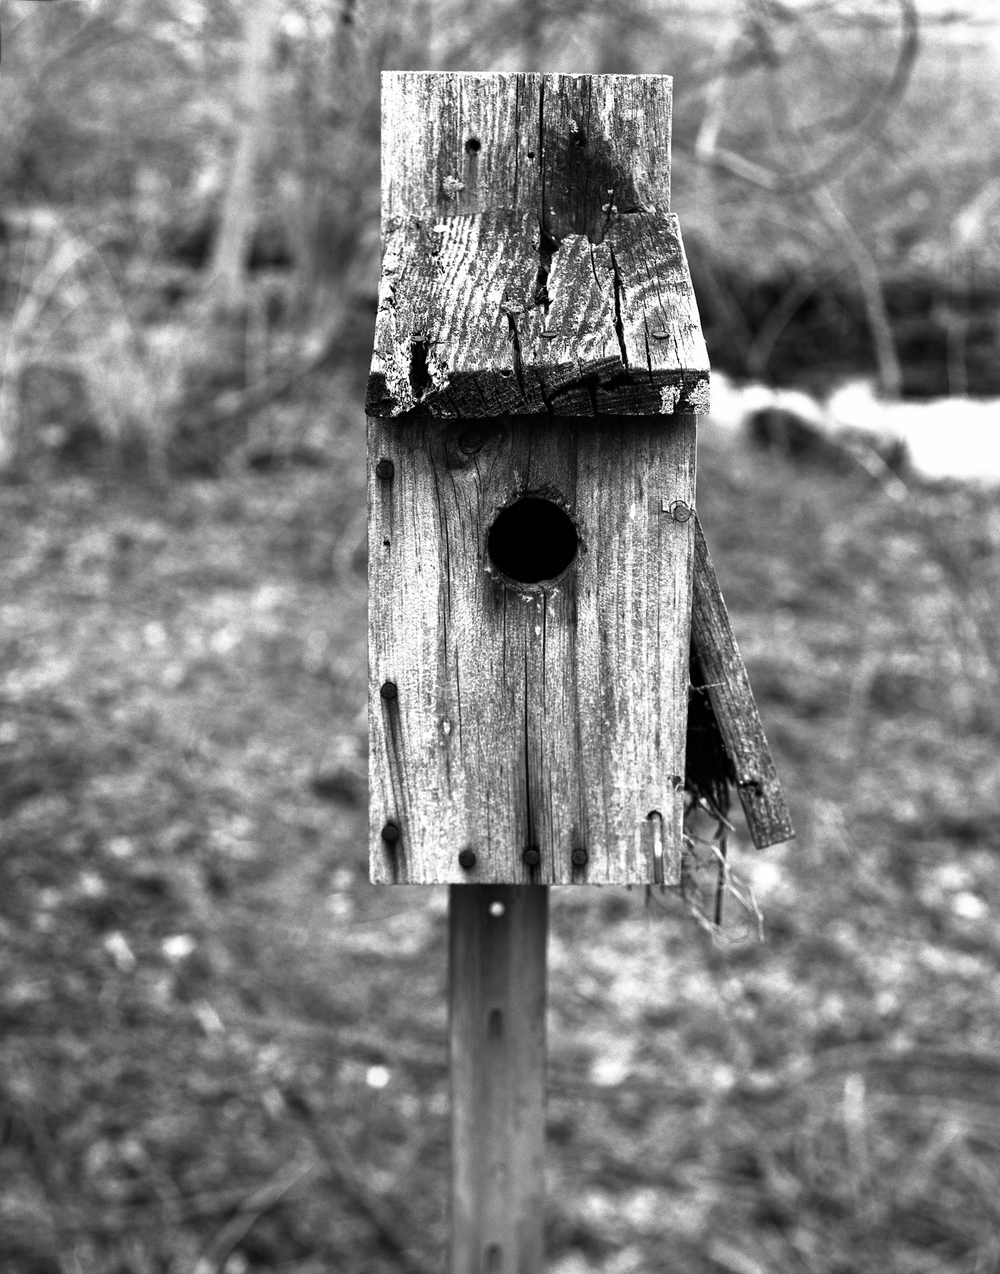 4x5_for_365_project_082_Birdhouse.jpg